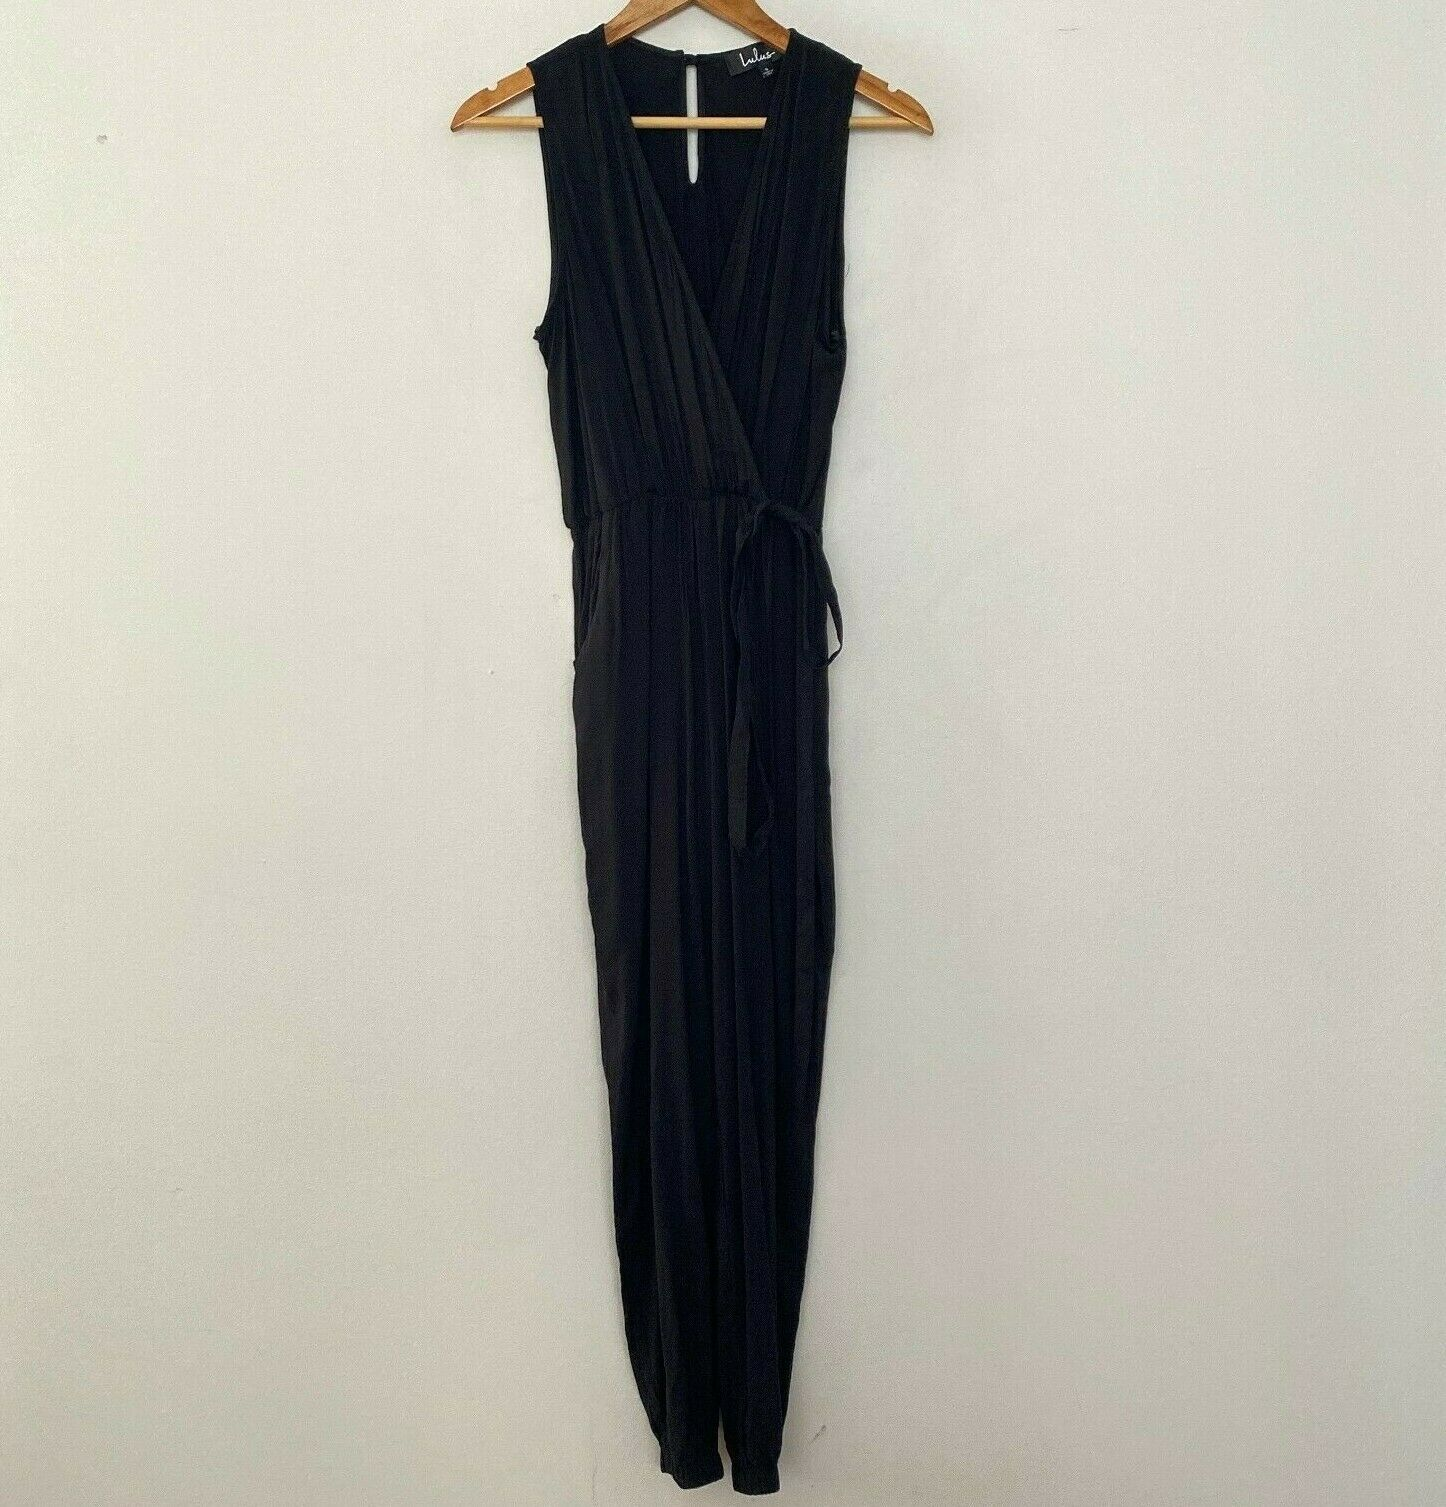 Primary image for NEW Lulus S Small Take On The Day Sleeveless Surplice Jumpsuit Black